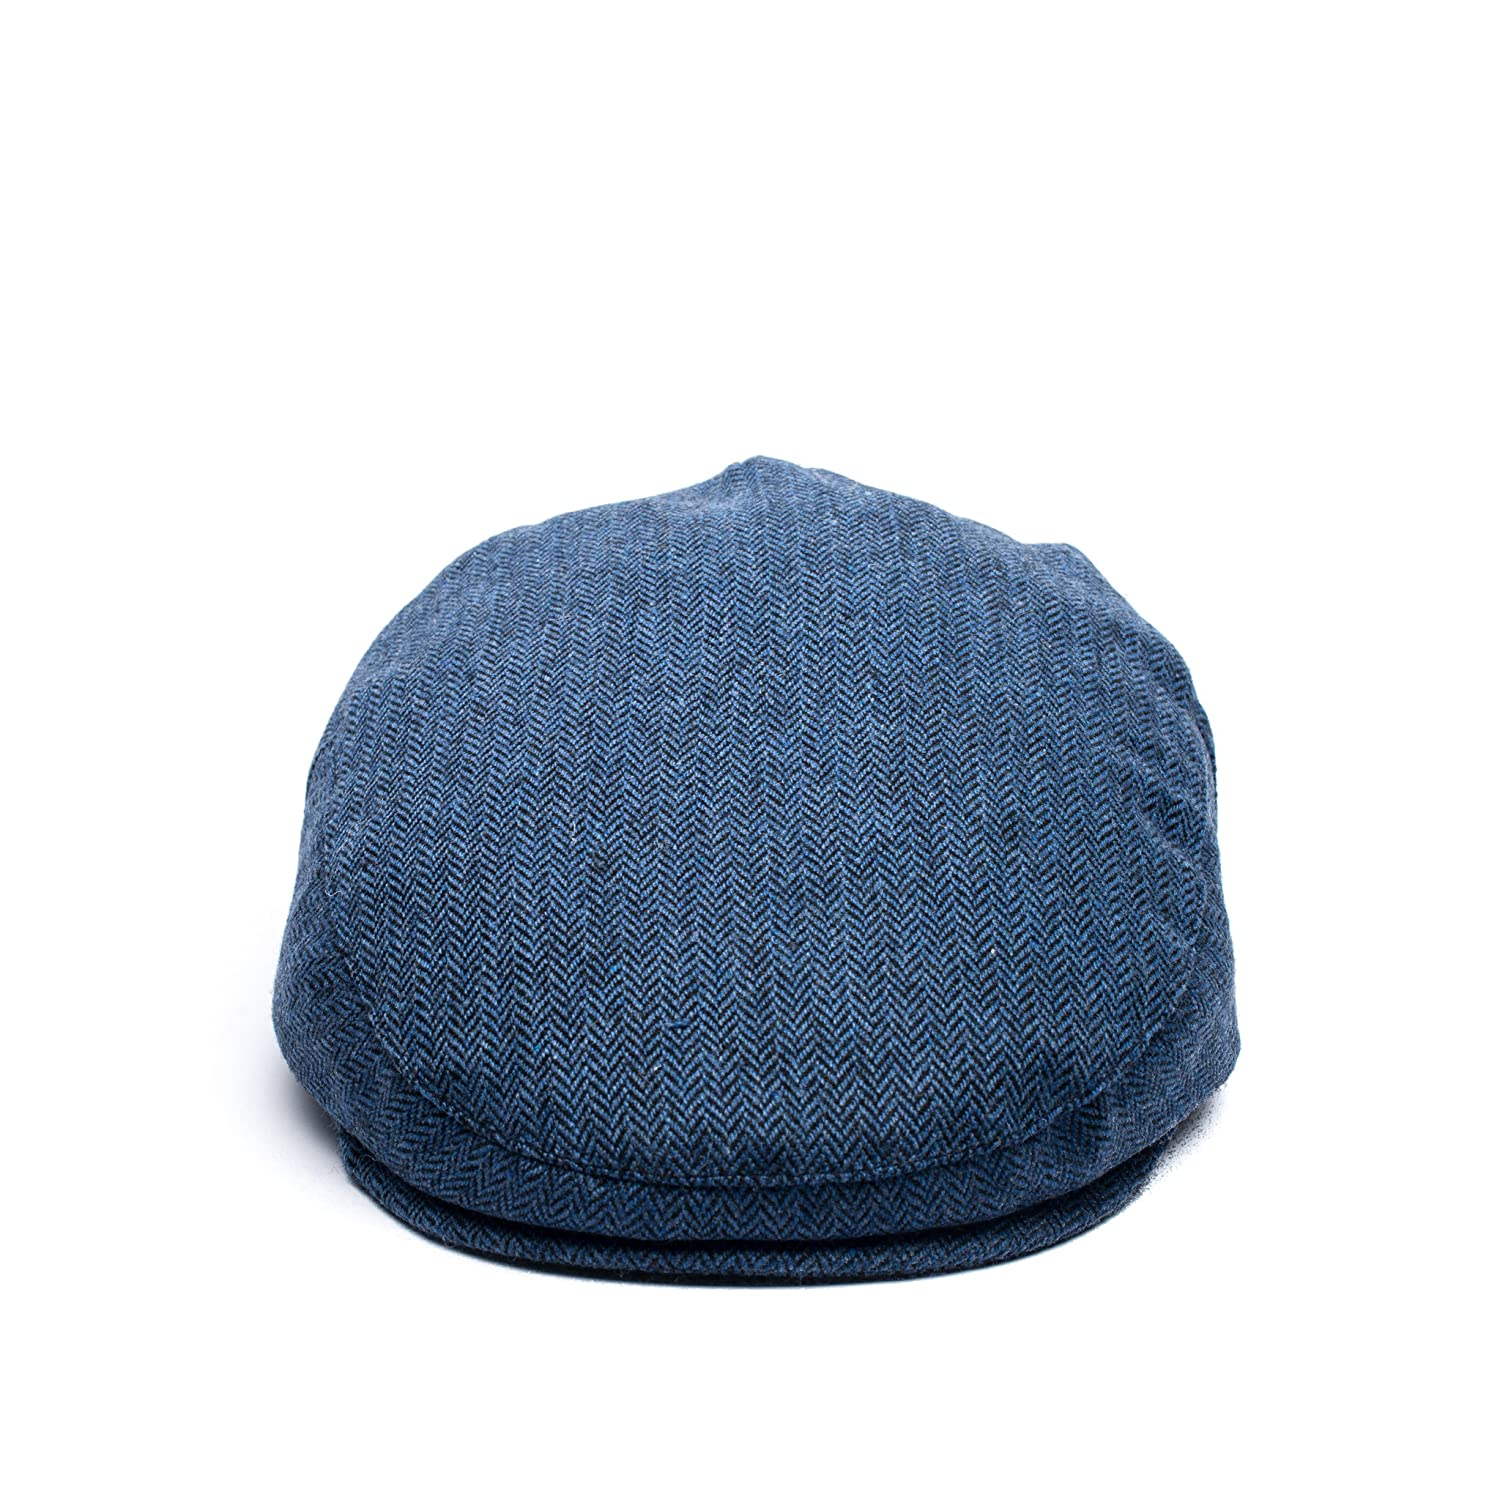 5bdde7ff53d84 Amazon.com  Born to Love Flat Scally Cap - Boy s Tweed Page Boy Newsboy Baby  Kids Driver Cap Hat  Clothing